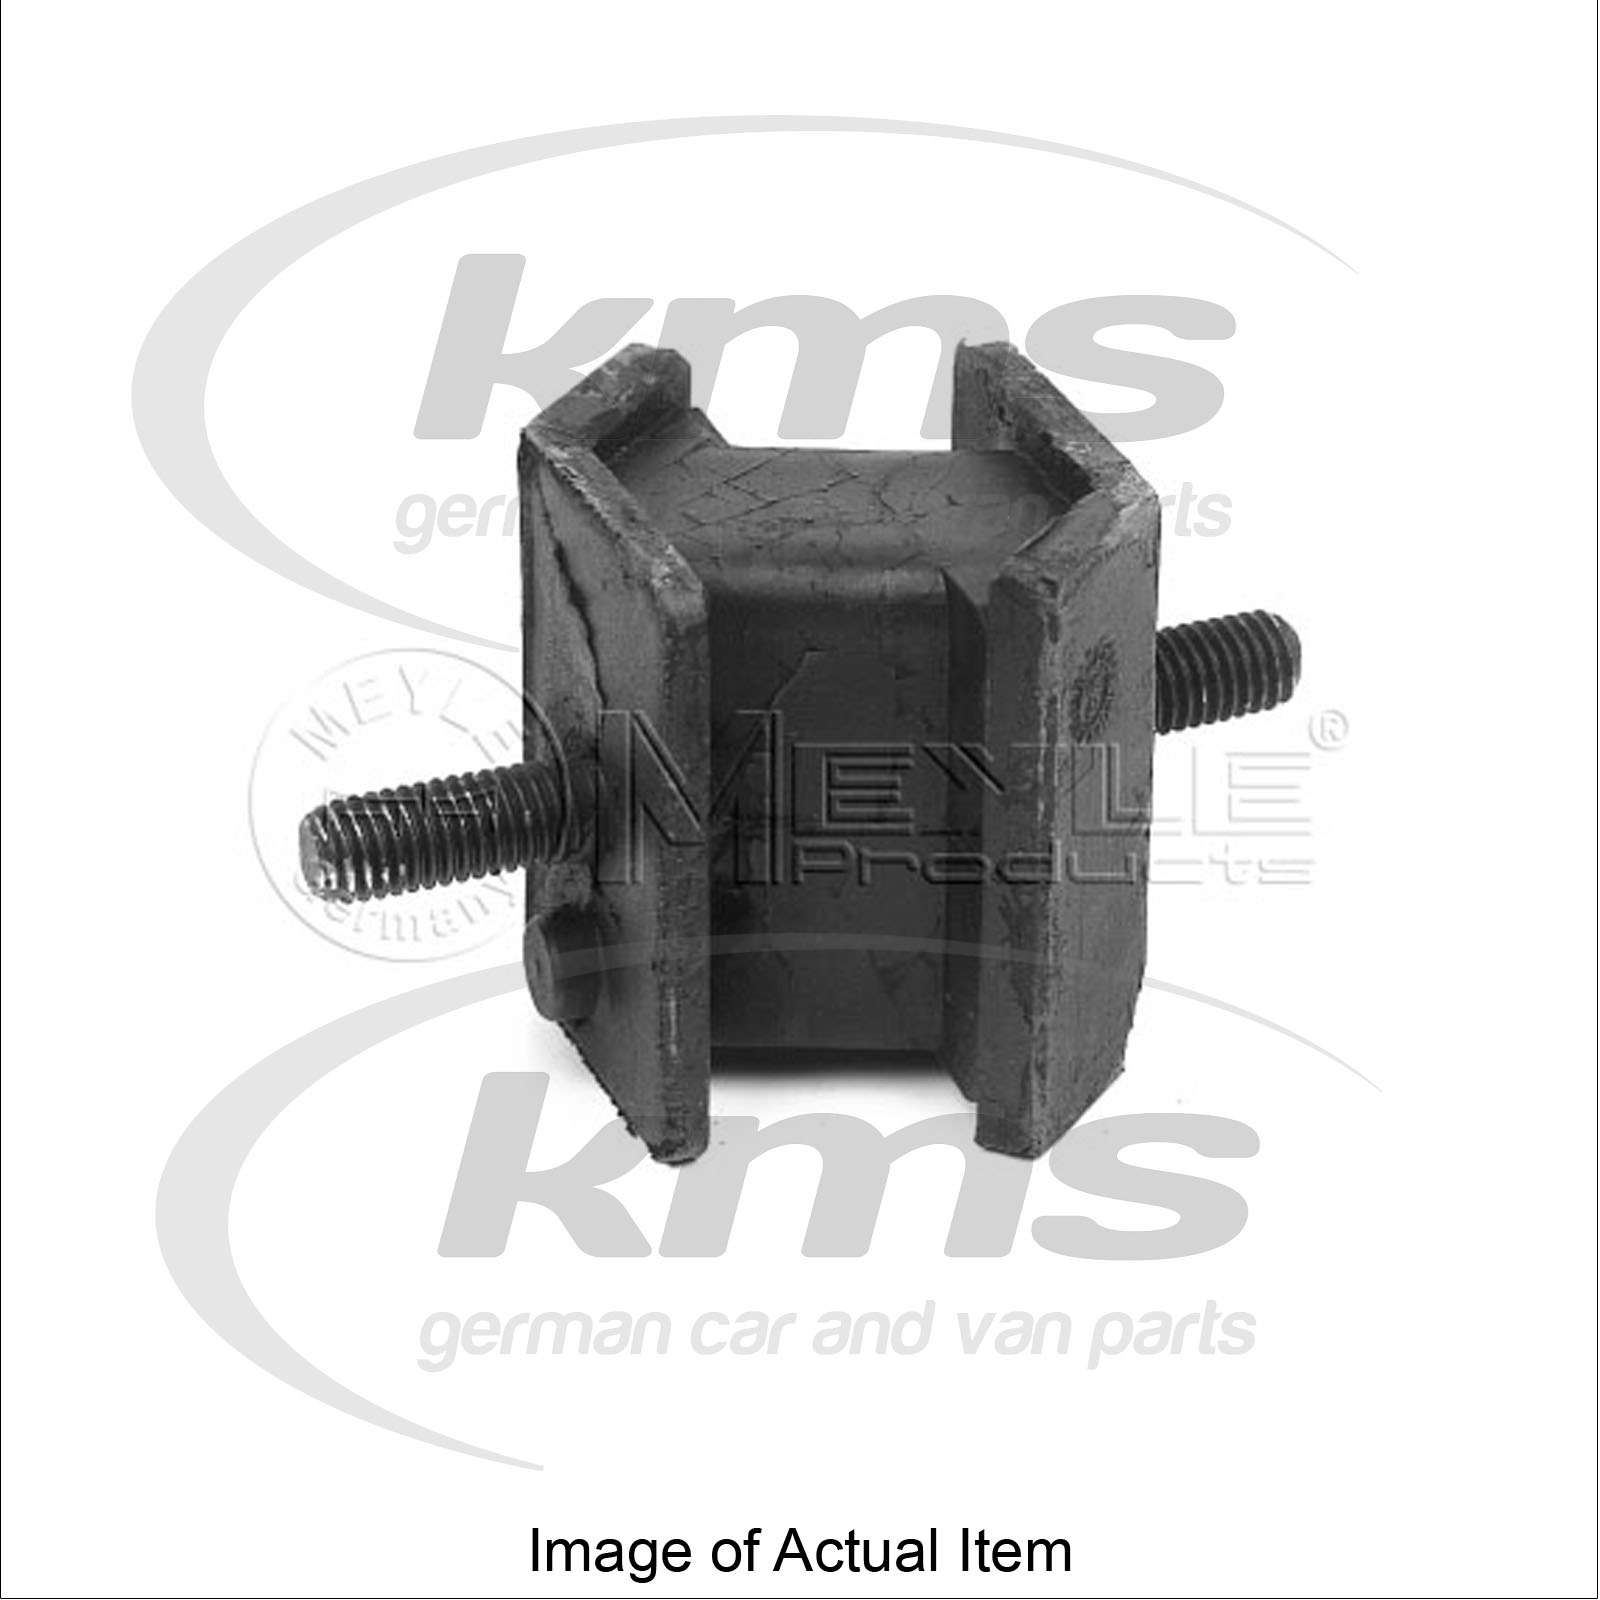 MOUNTING For MANUAL TRANSMISSION BMW 3 Coupe (E36) 325 I